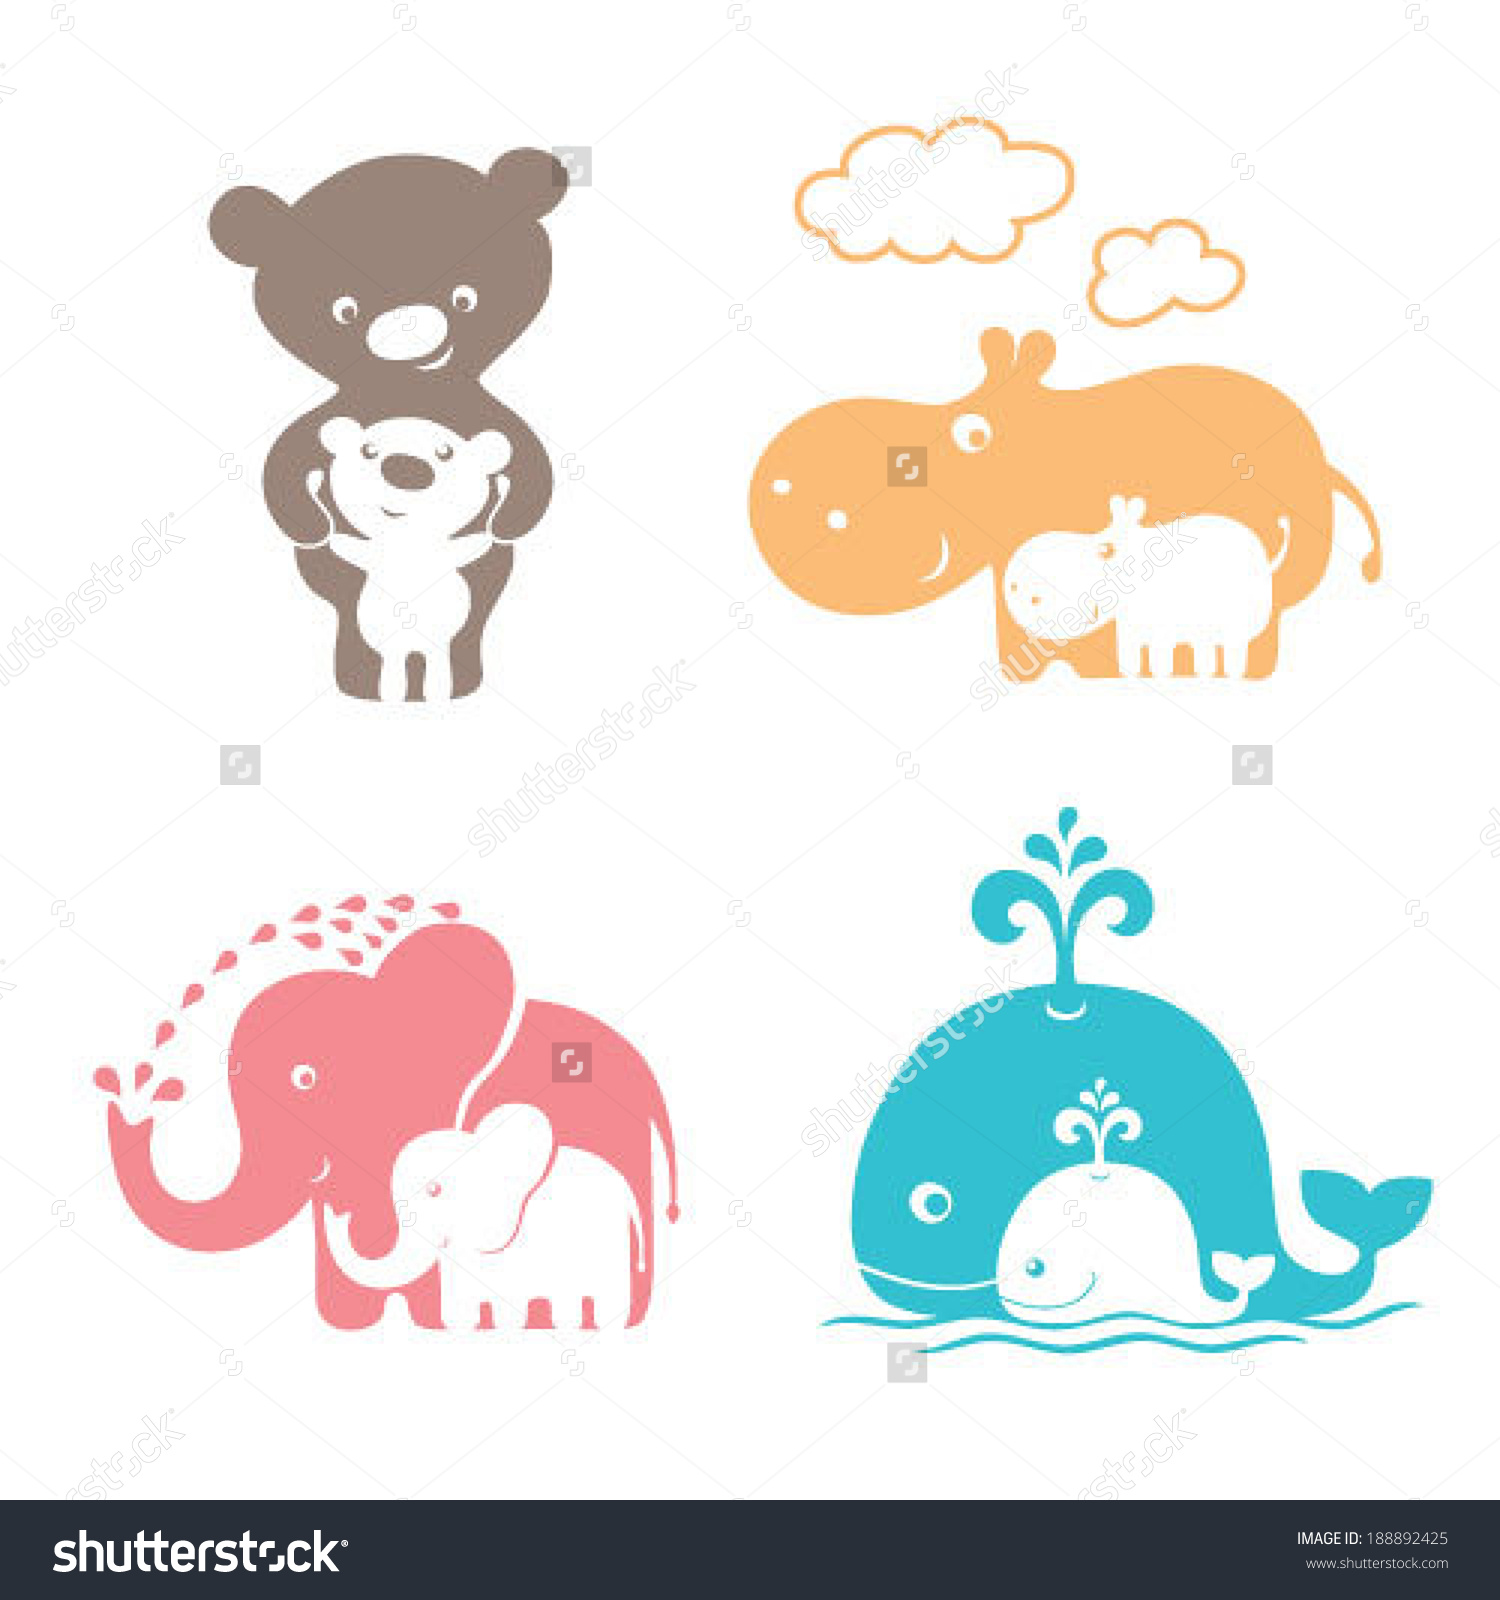 Mama baby elephant clipart graphic black and white Cute Animals Family Mom Bear Baby Stock Vector 188892425 ... graphic black and white